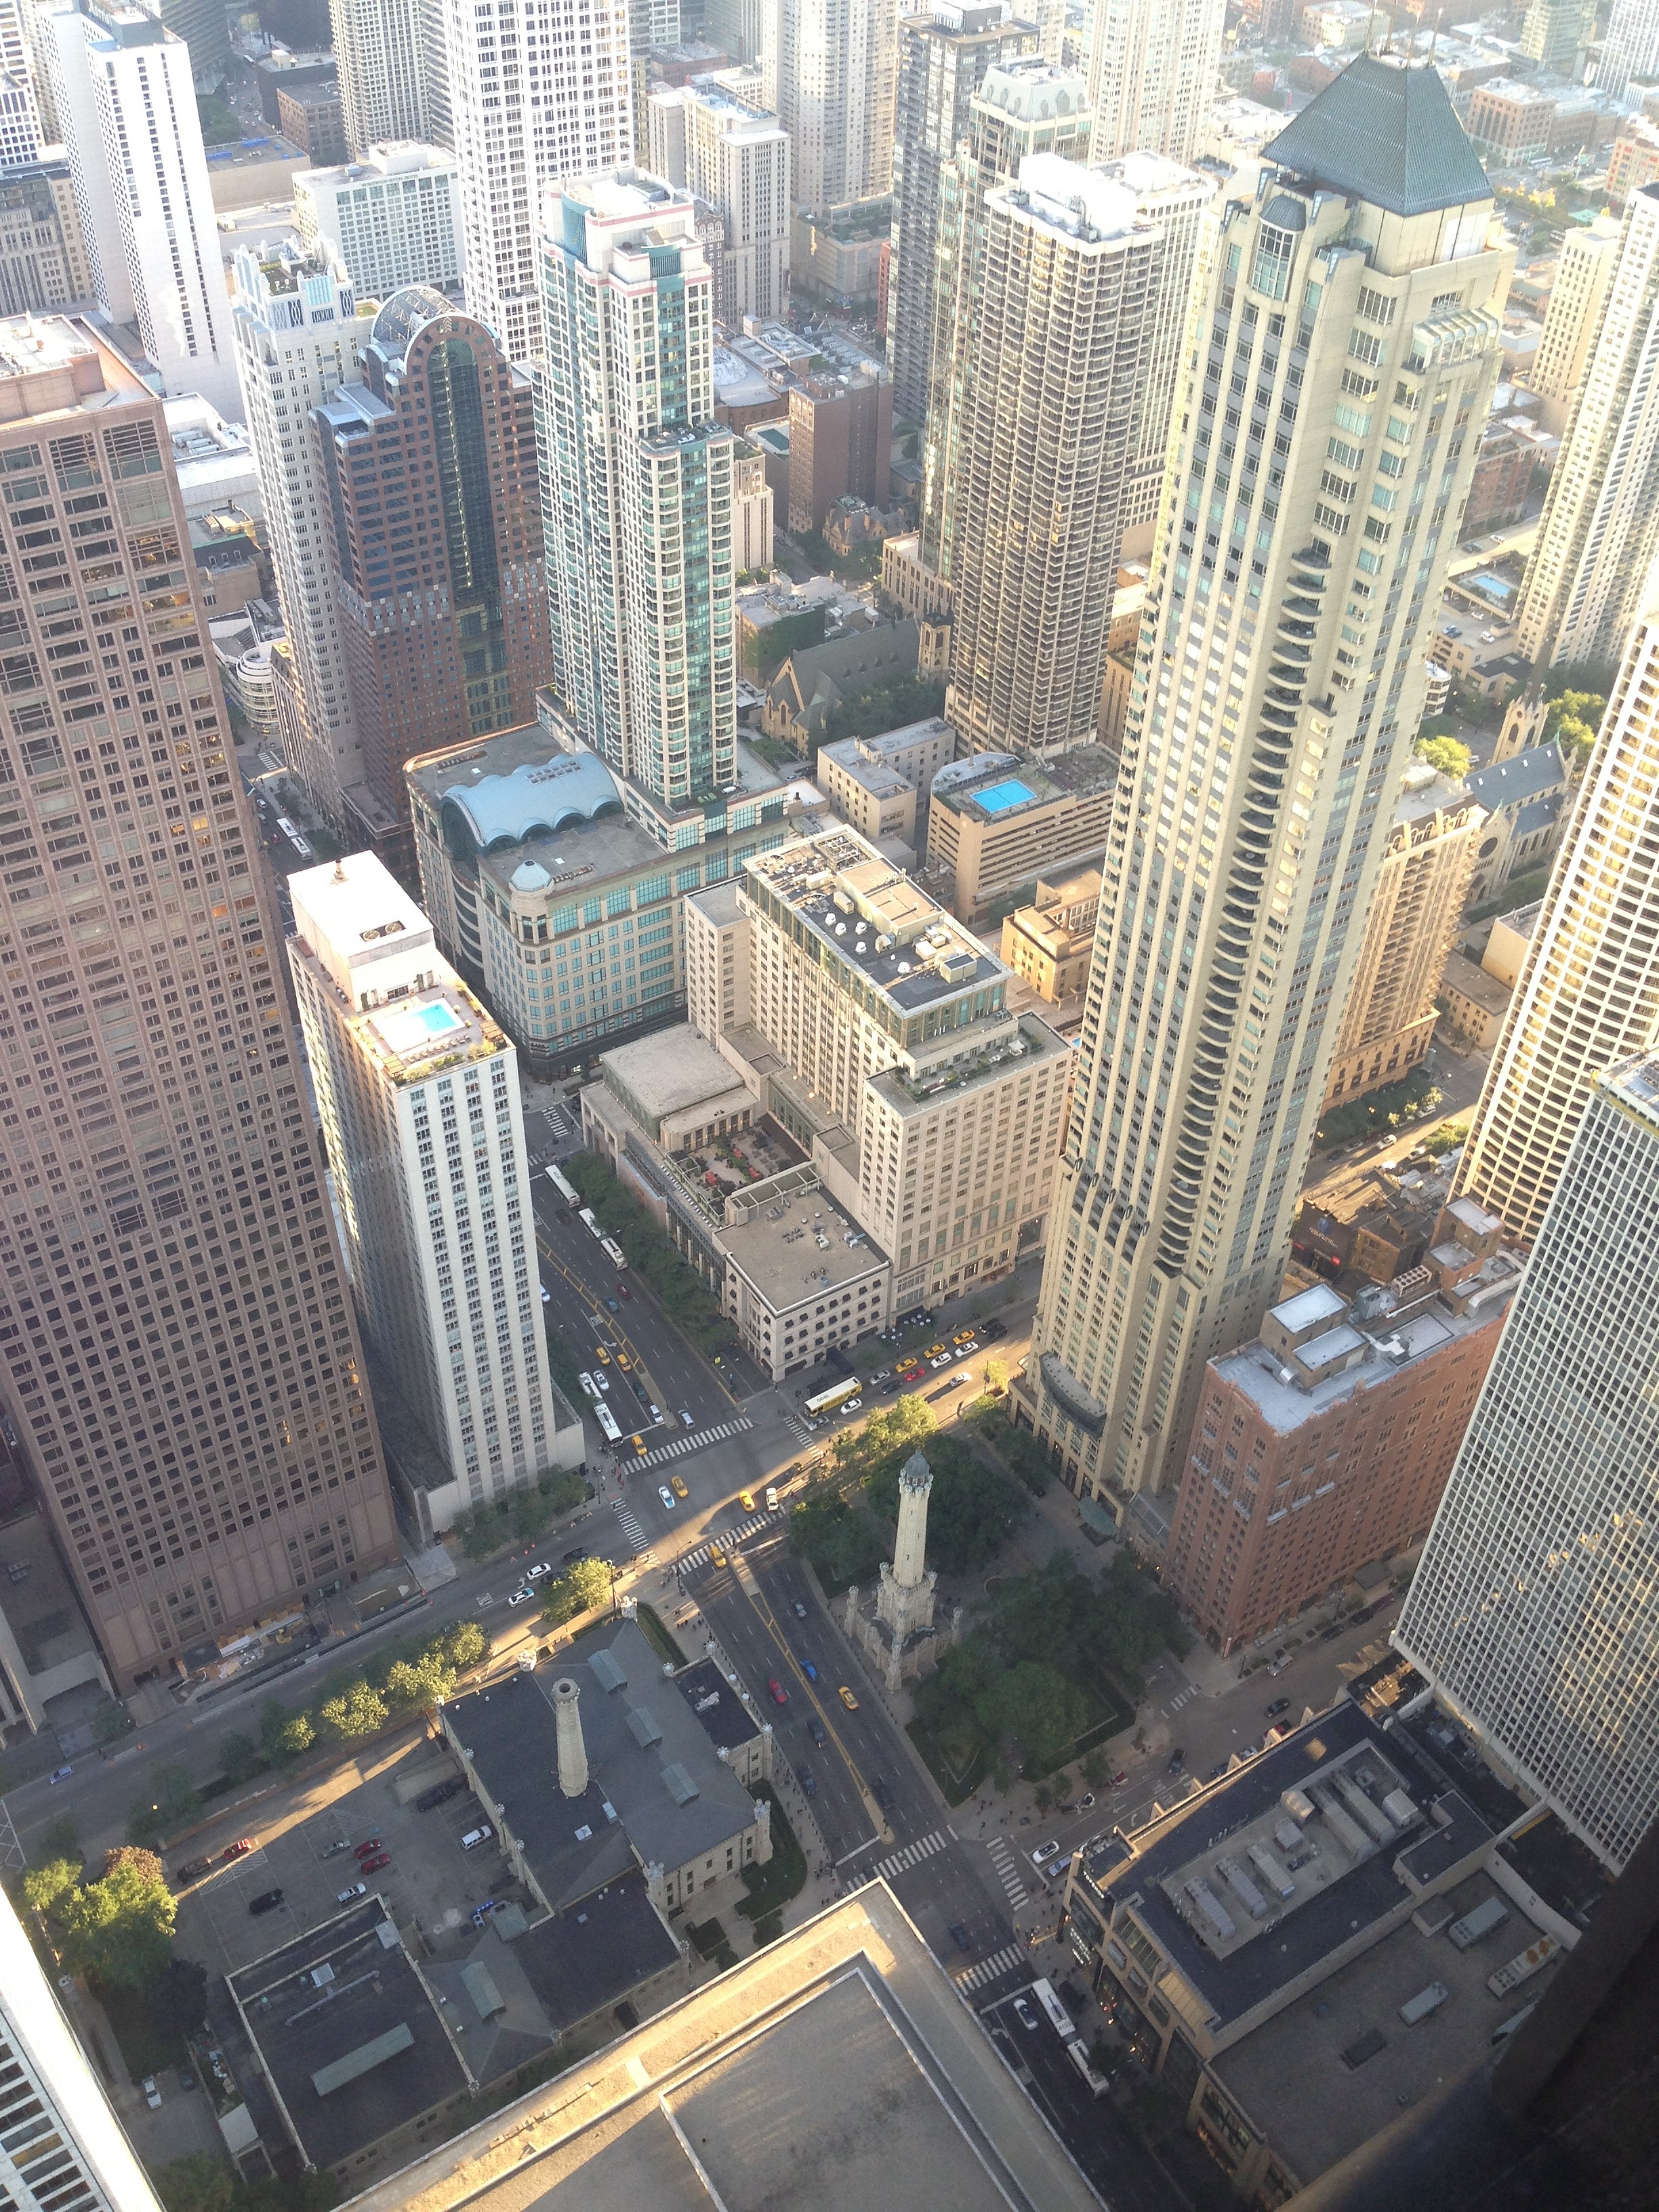 FileChicago Water Tower as seen from the John Hancock tower